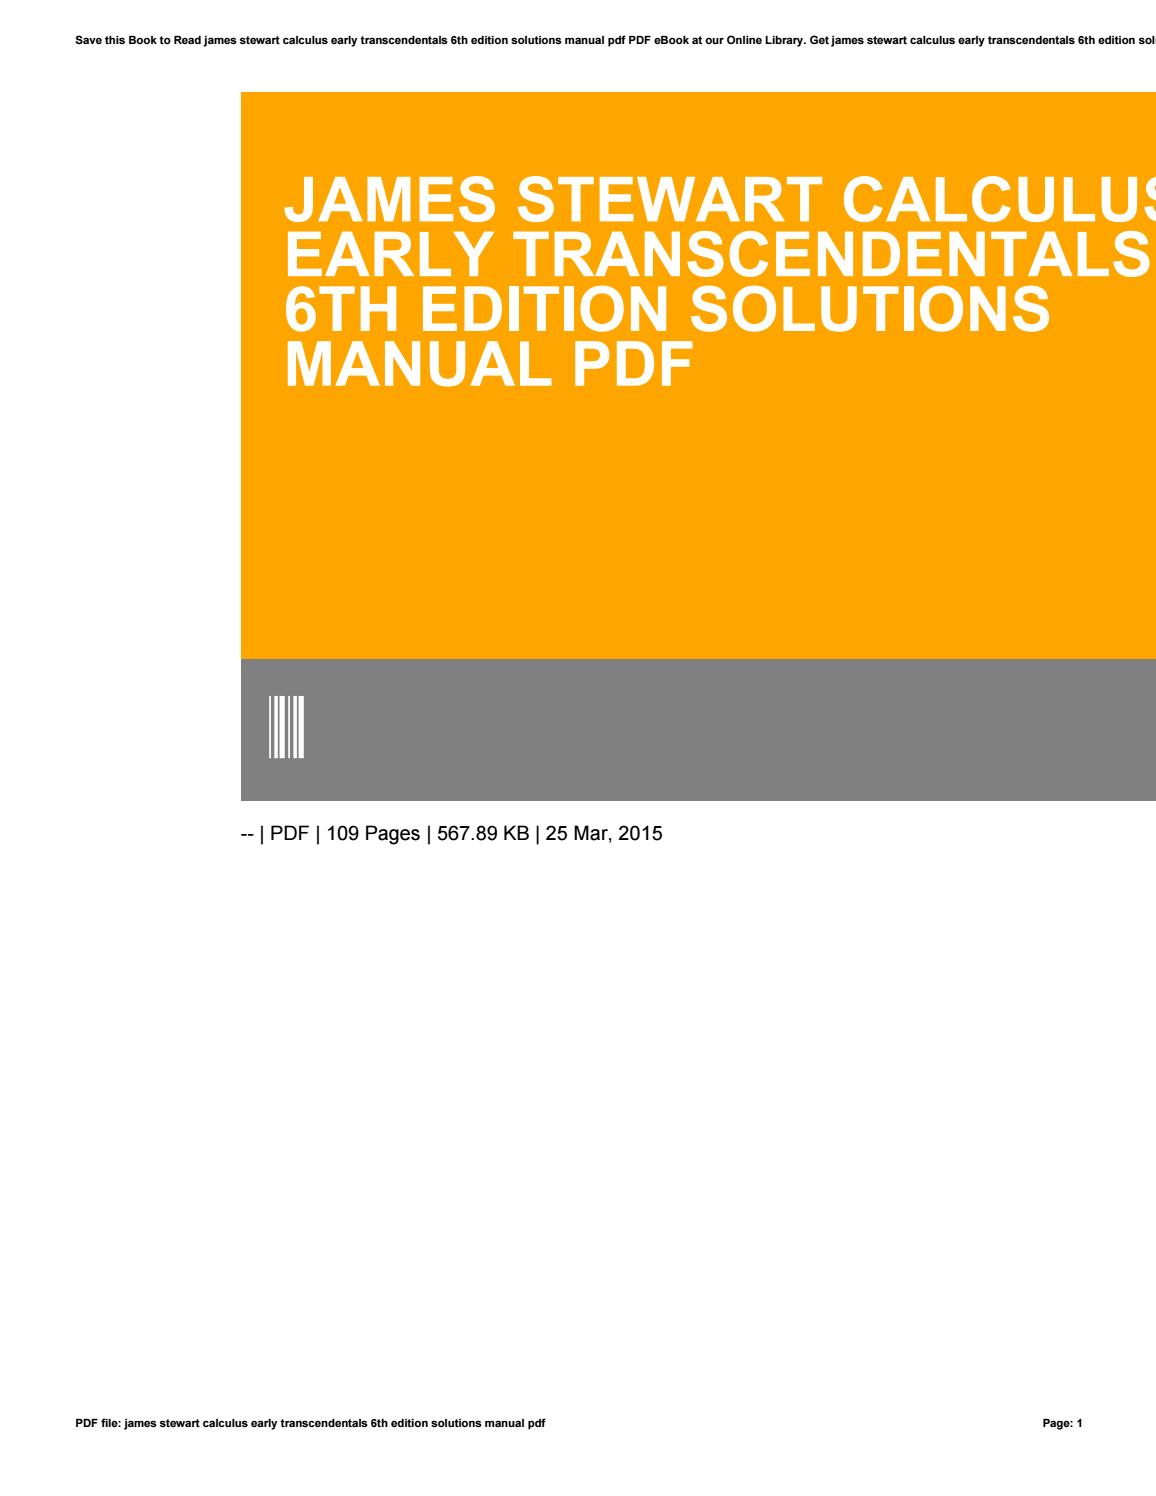 Stewart Calculus Early Transcendentals Pdf